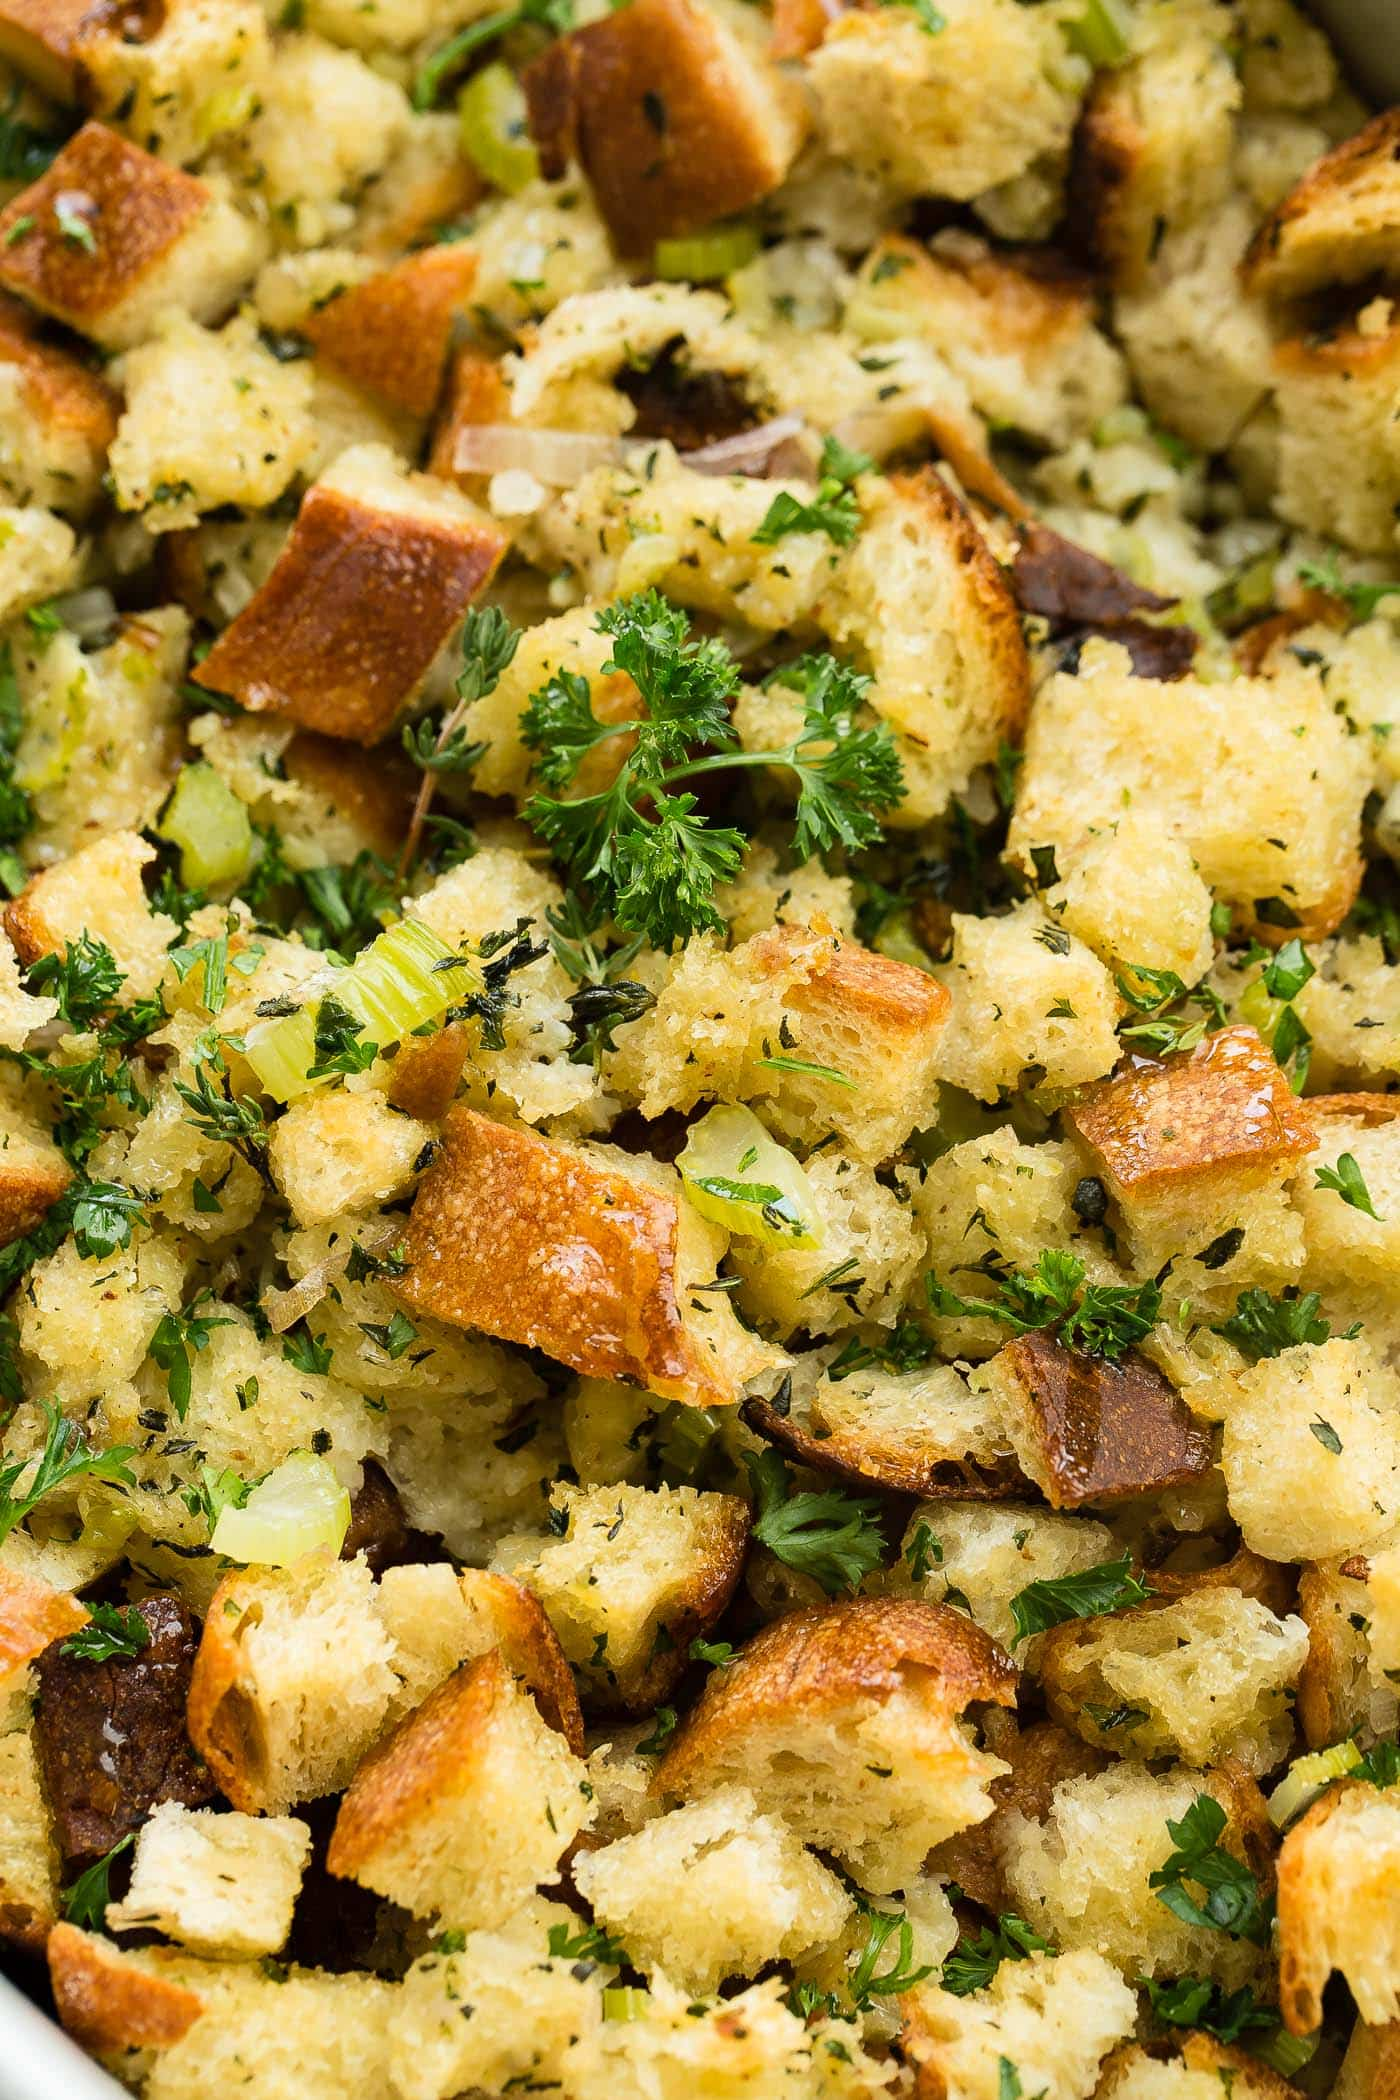 A close up photo of classic stuffing that is golden brown and topped with chopped fresh parsley.